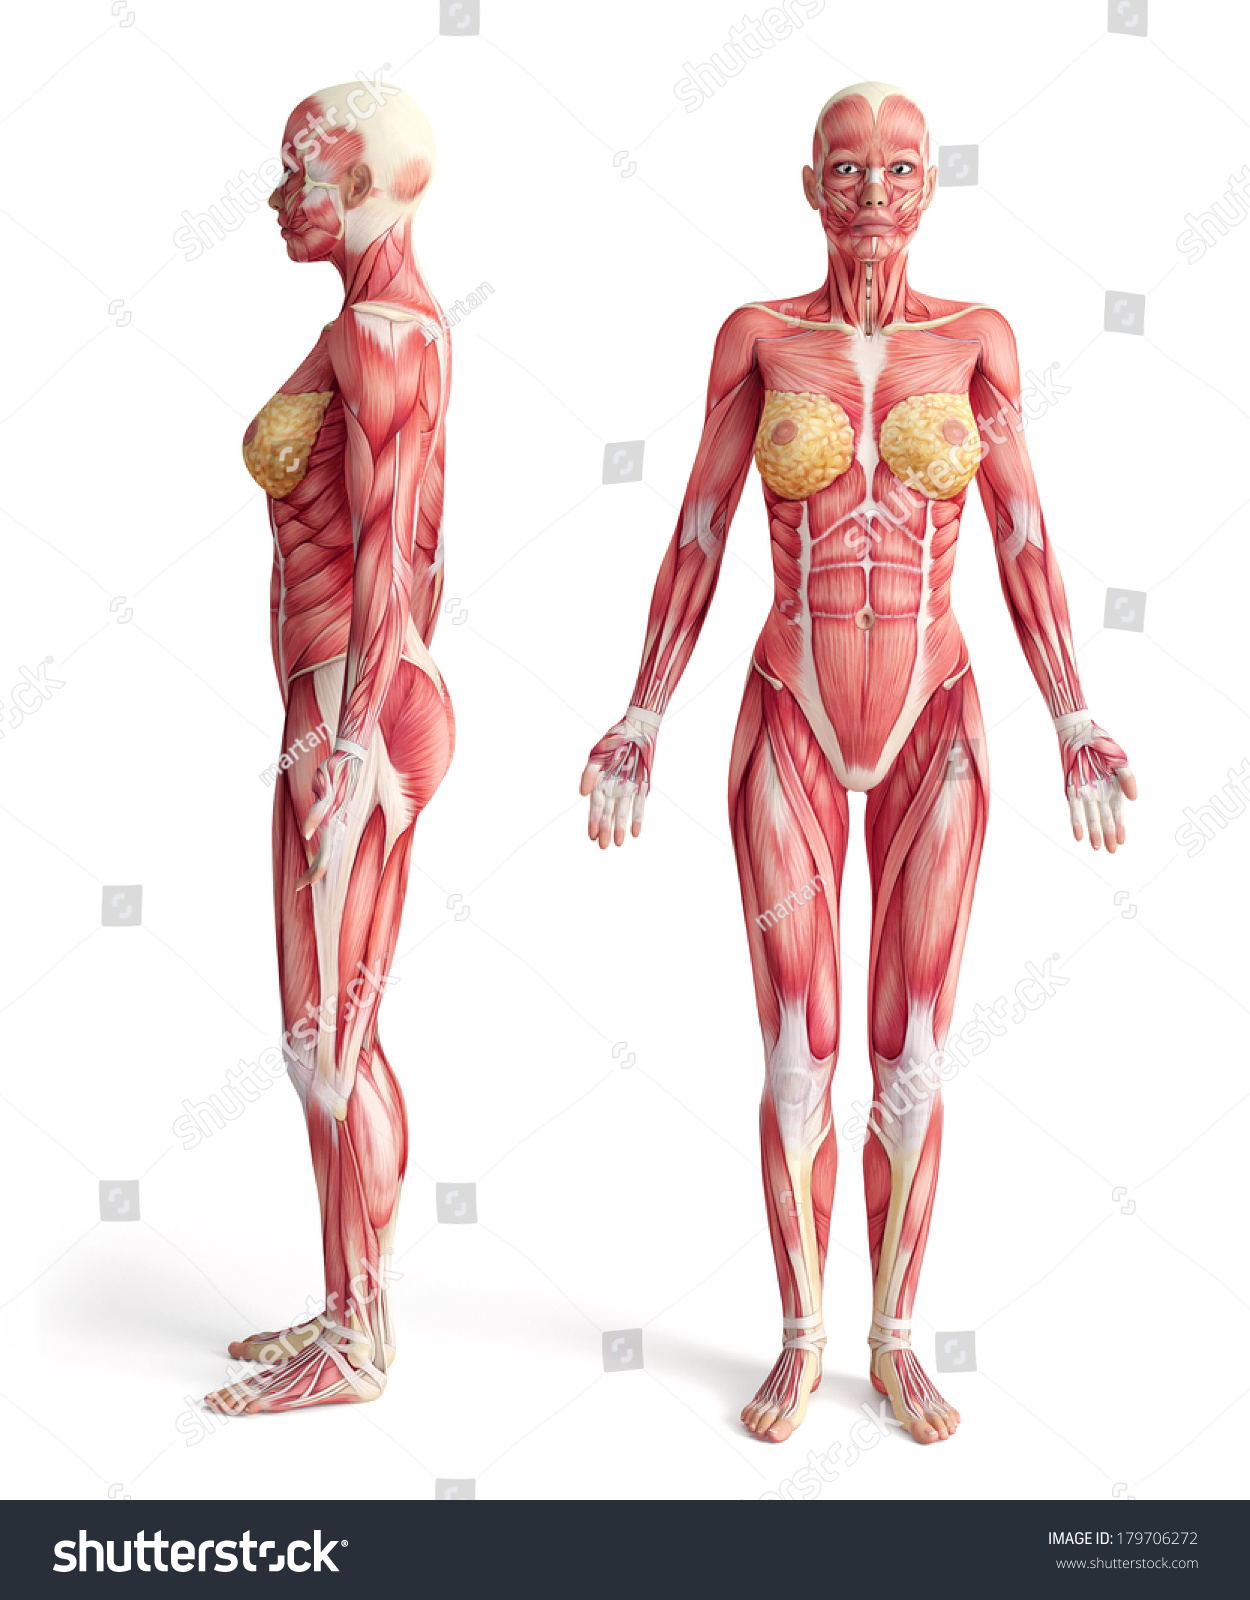 Side View Of Female Organs Diagram Human Body - DIY Enthusiasts ...